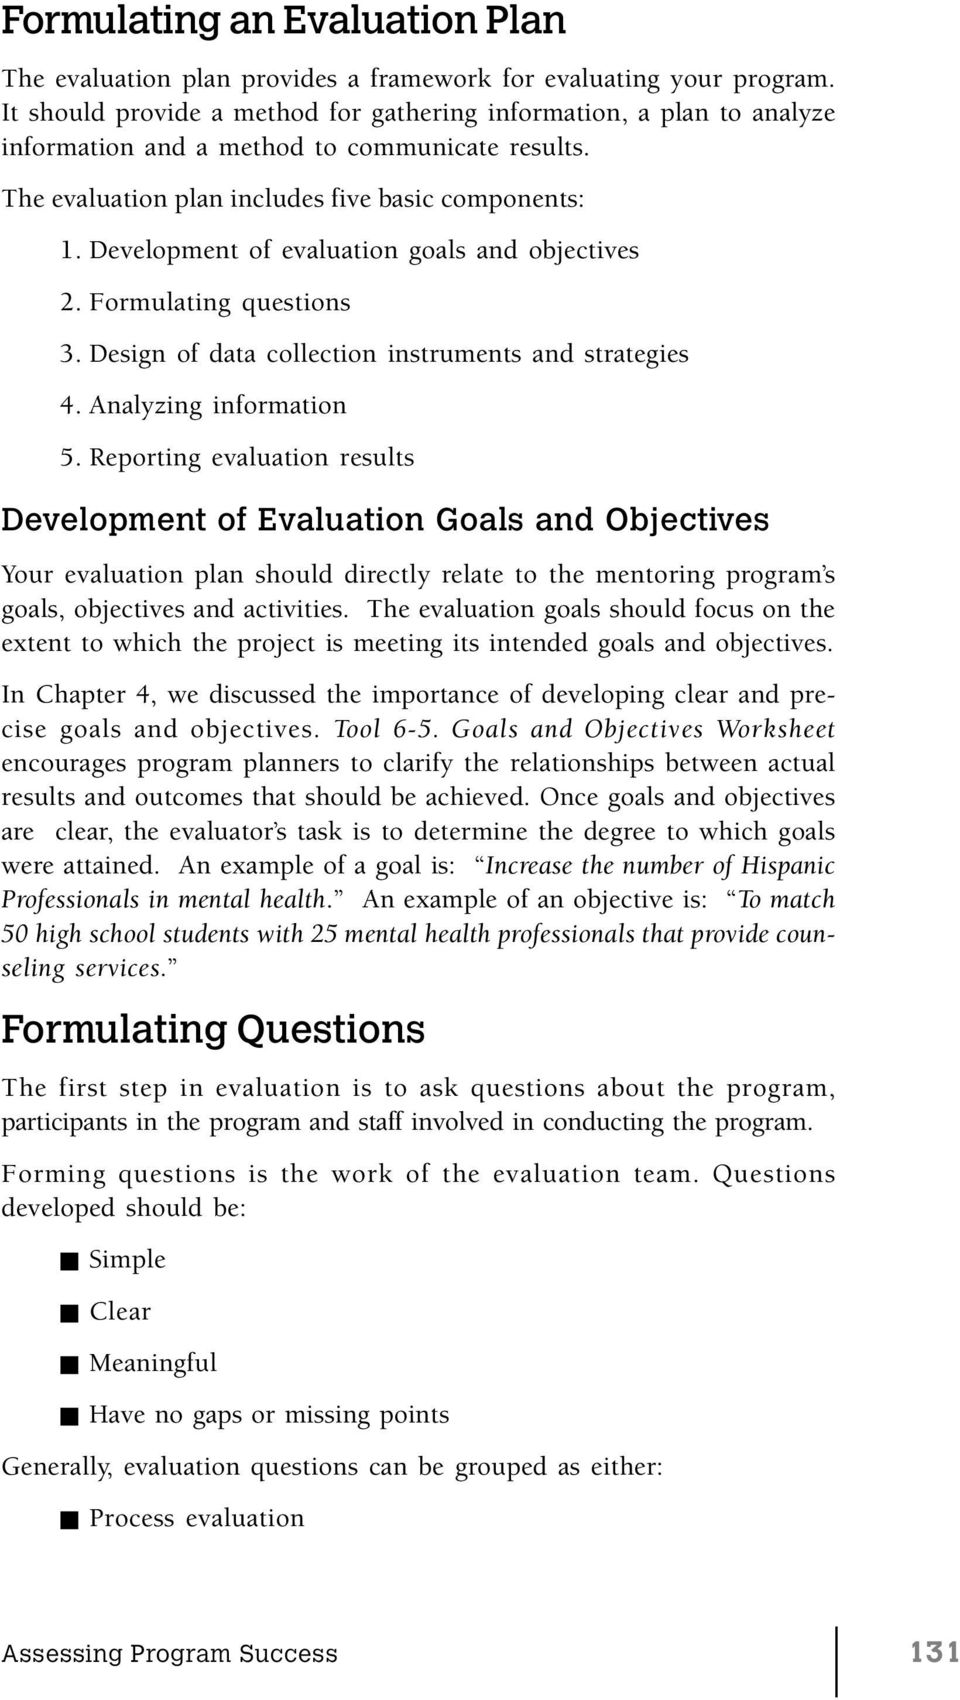 Development of evaluation goals and objectives 2. Formulating questions 3. Design of data collection instruments and strategies 4. Analyzing information 5.